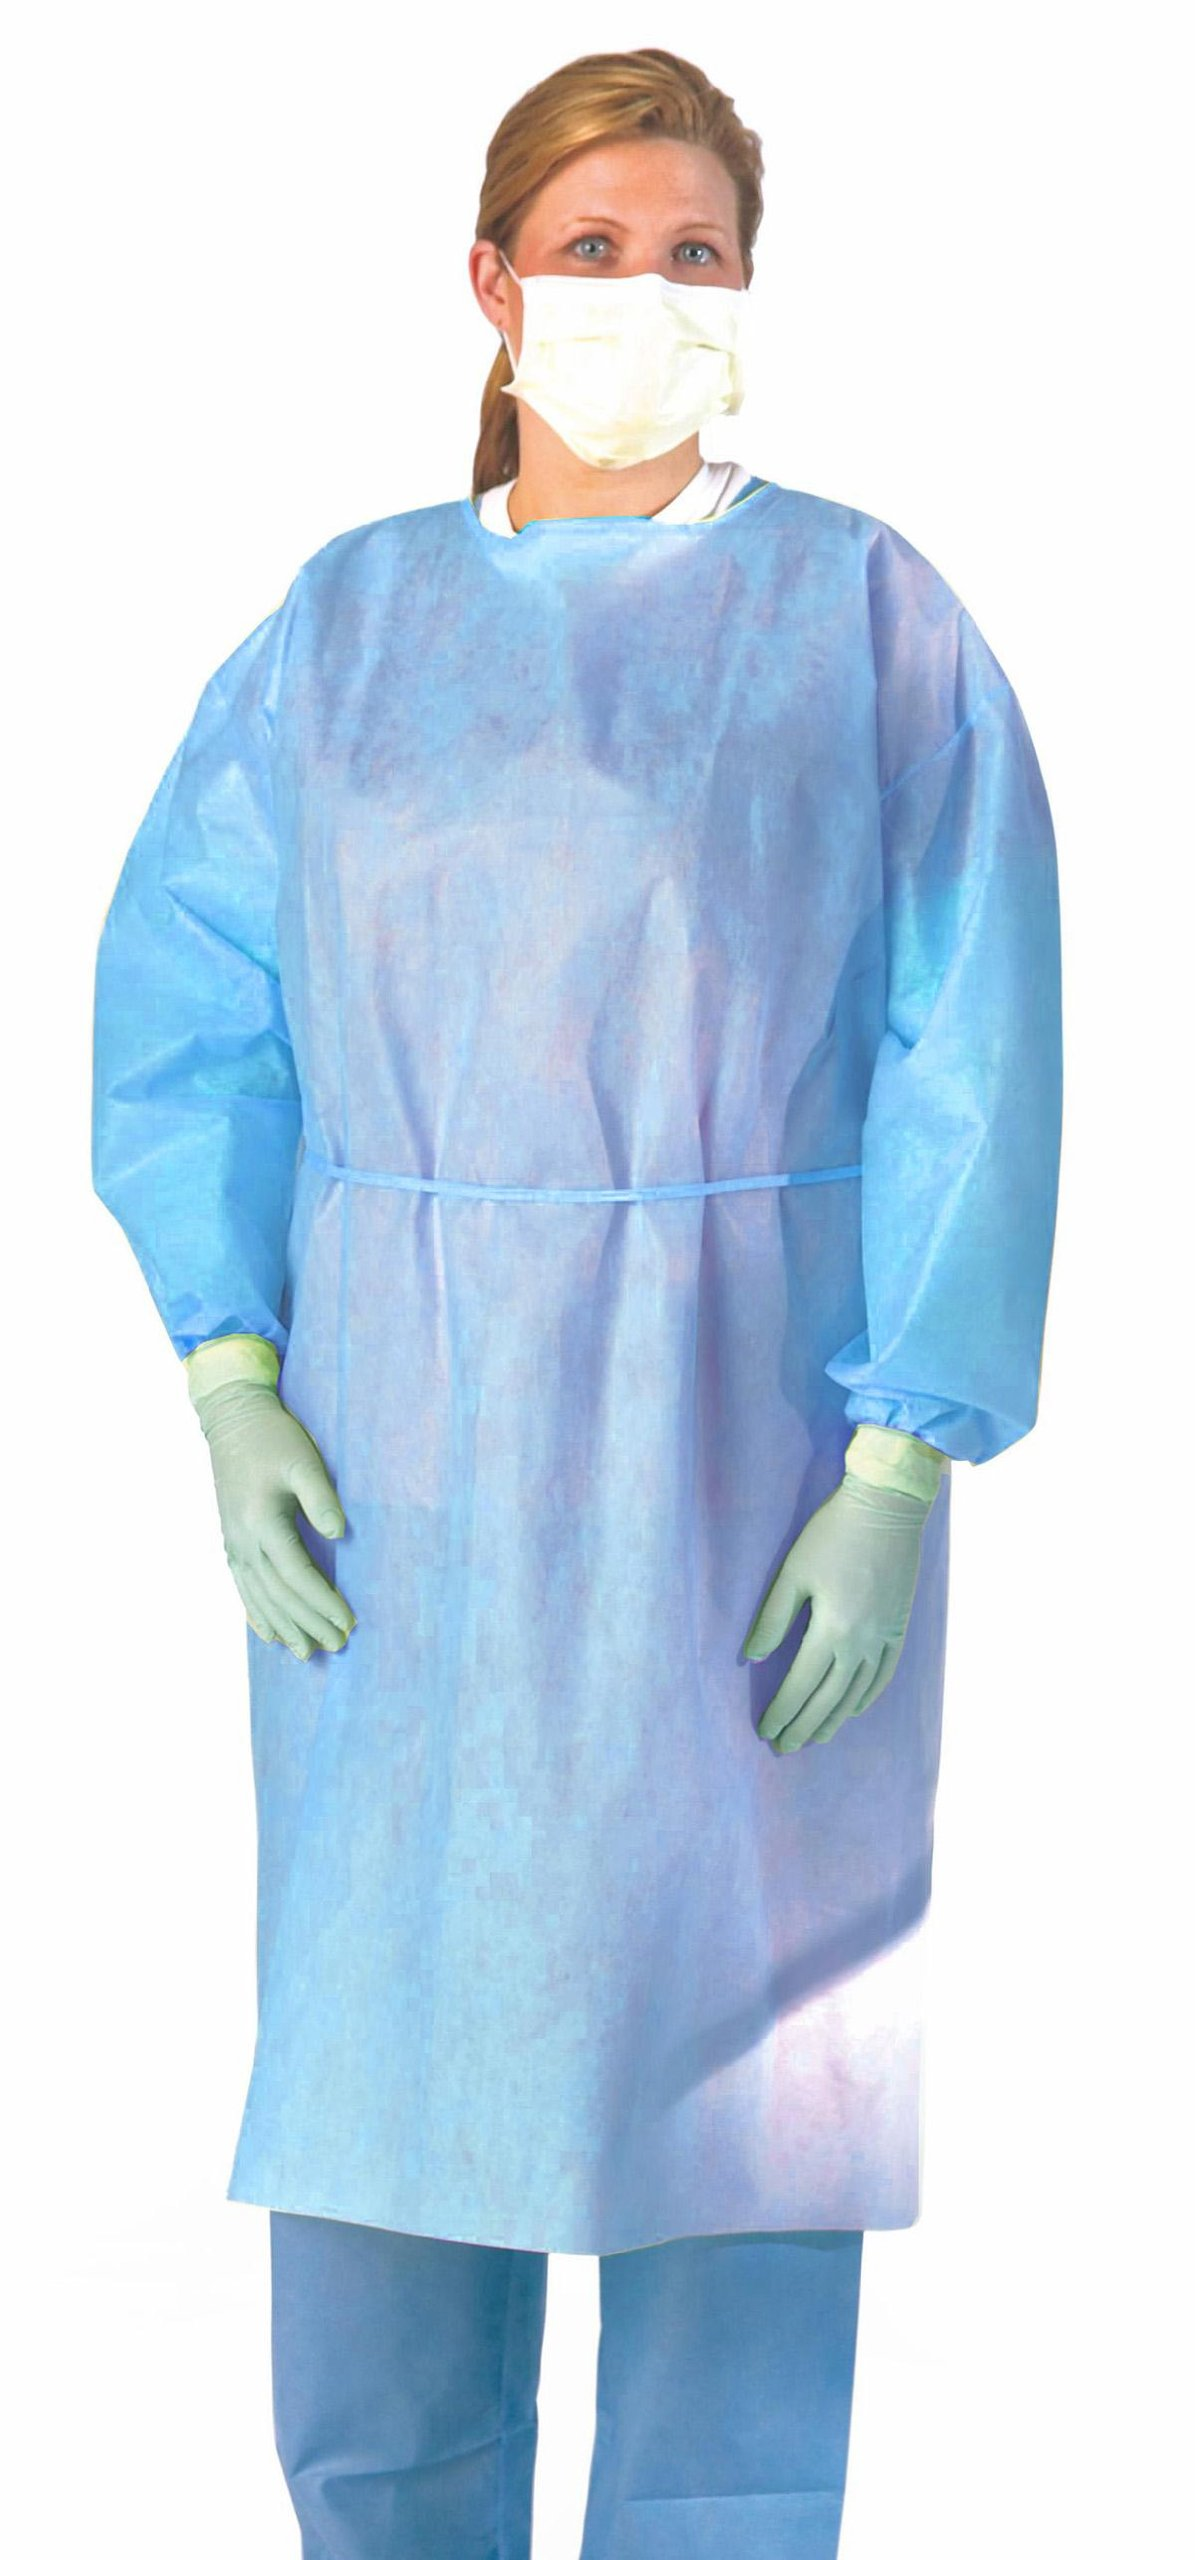 Medline NON27SMS3XL Medium Weight Multi-ply Fluid Resistant Isolation Gown, X-Large, Blue (Pack of 100)